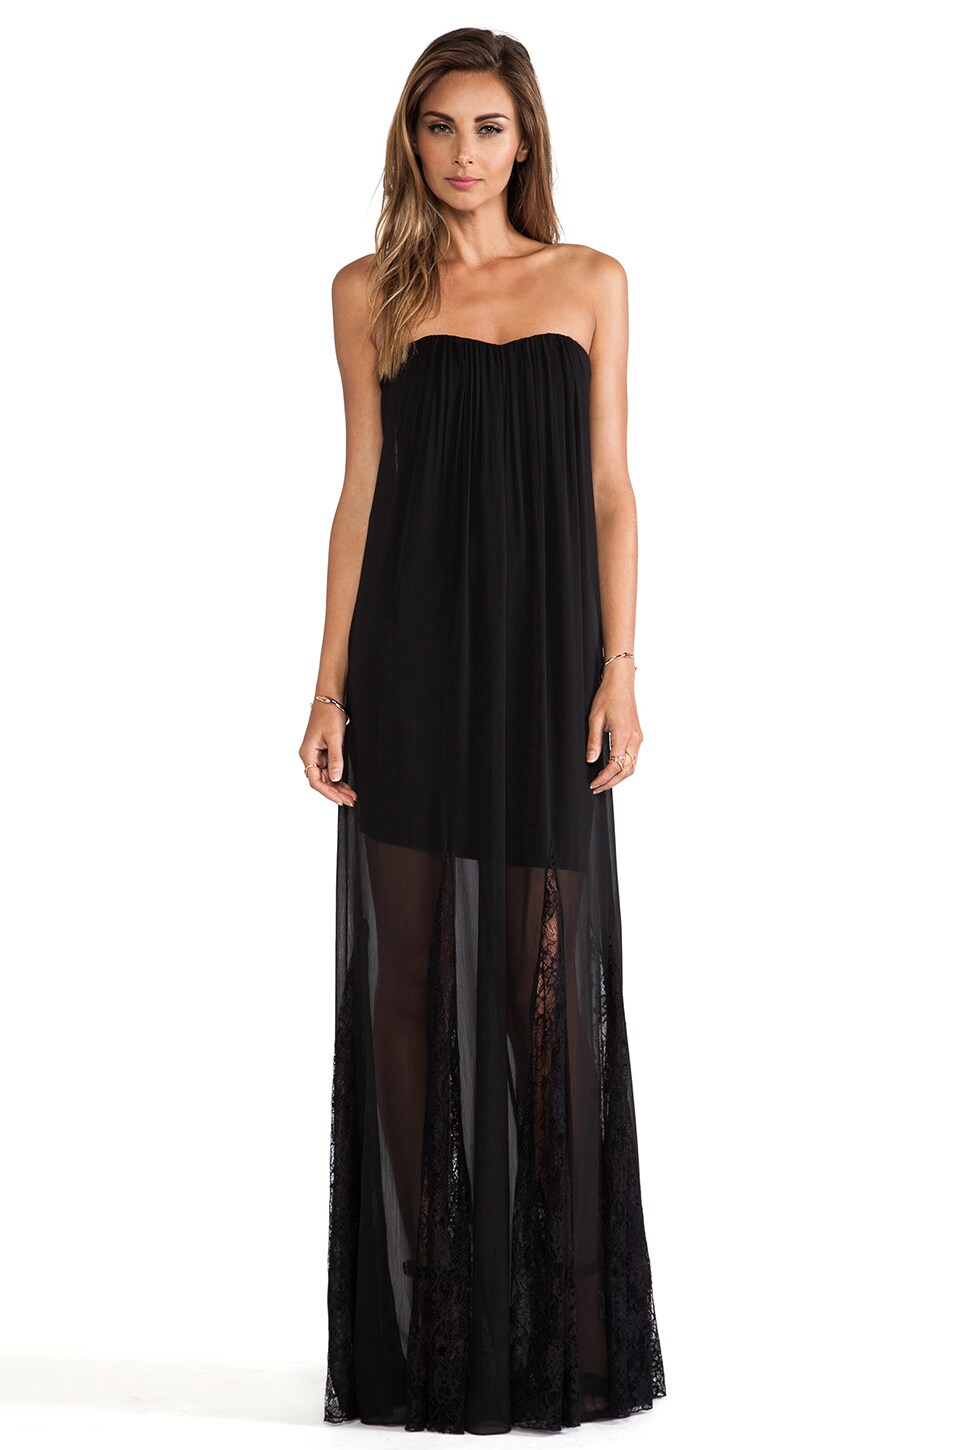 Alice + Olivia Francesca Strapless Maxi Dress in Black